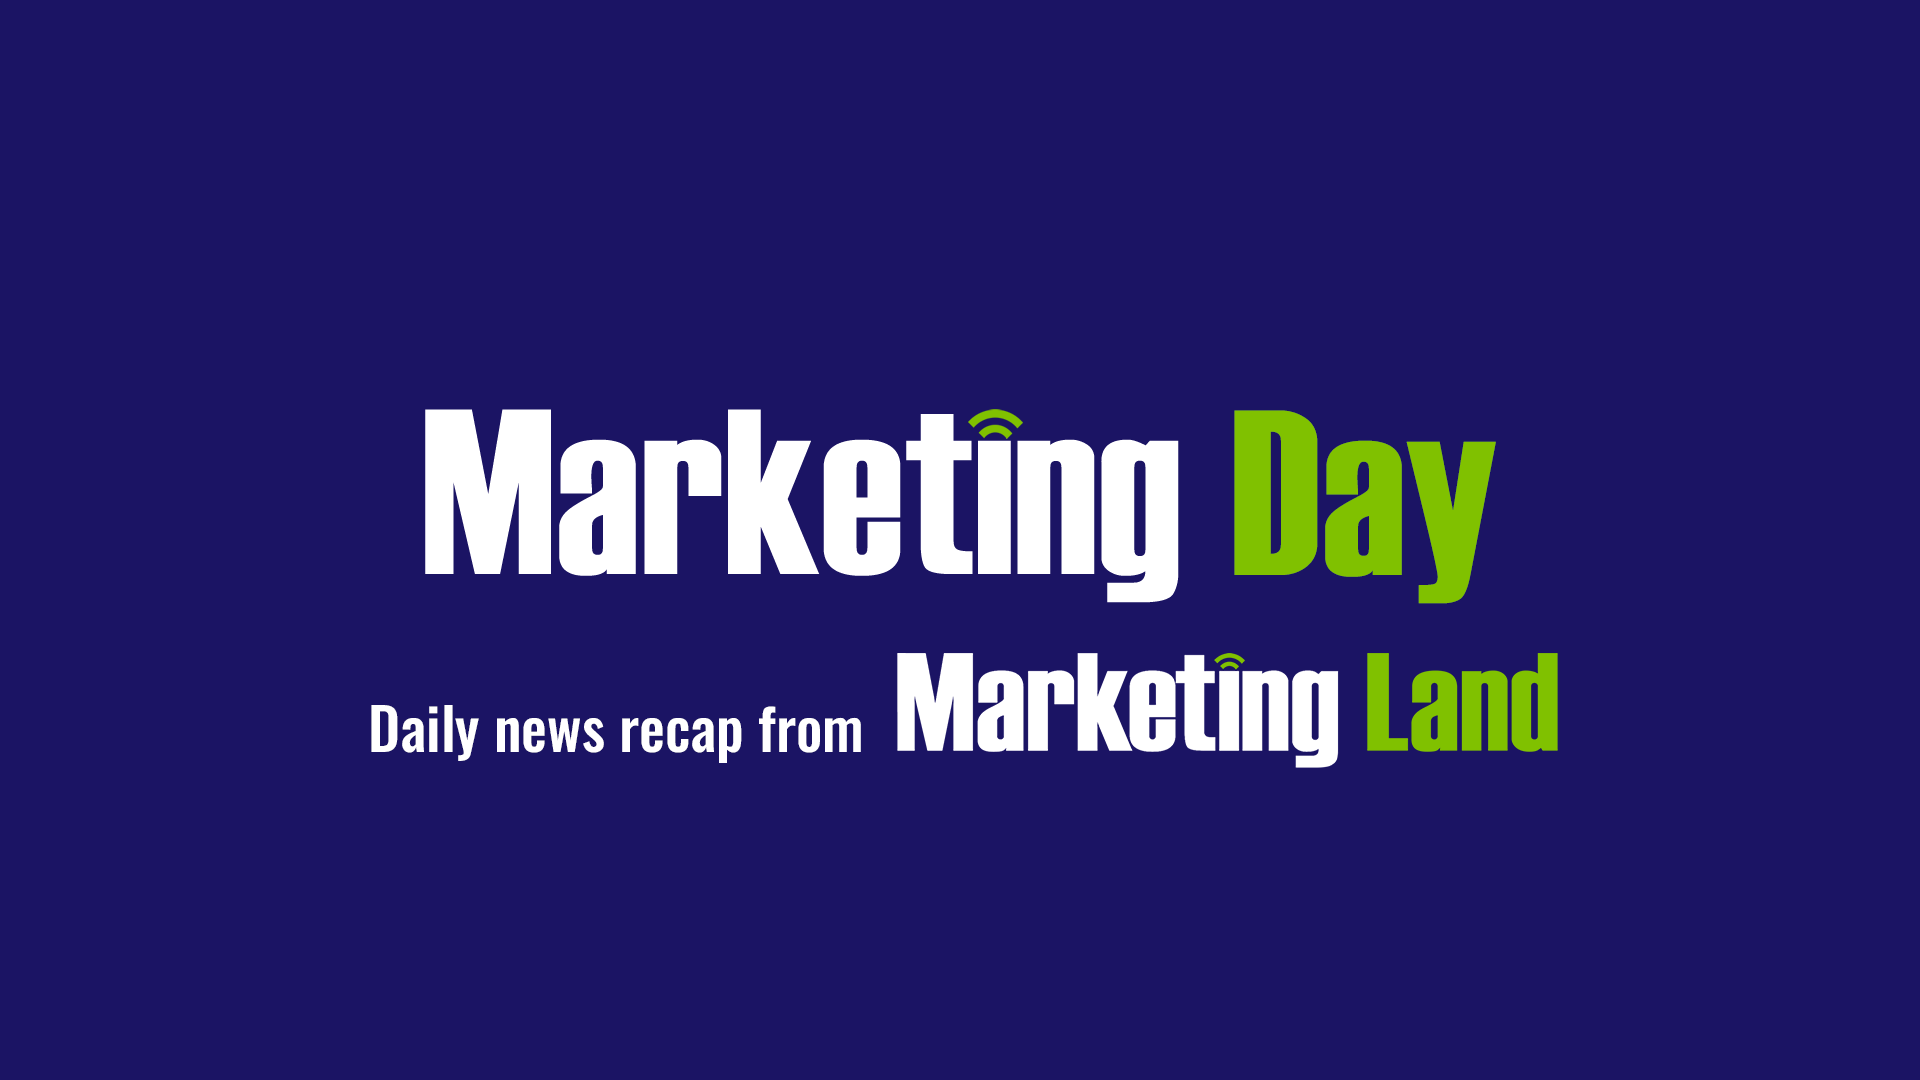 marketing-day-header-v2-mday